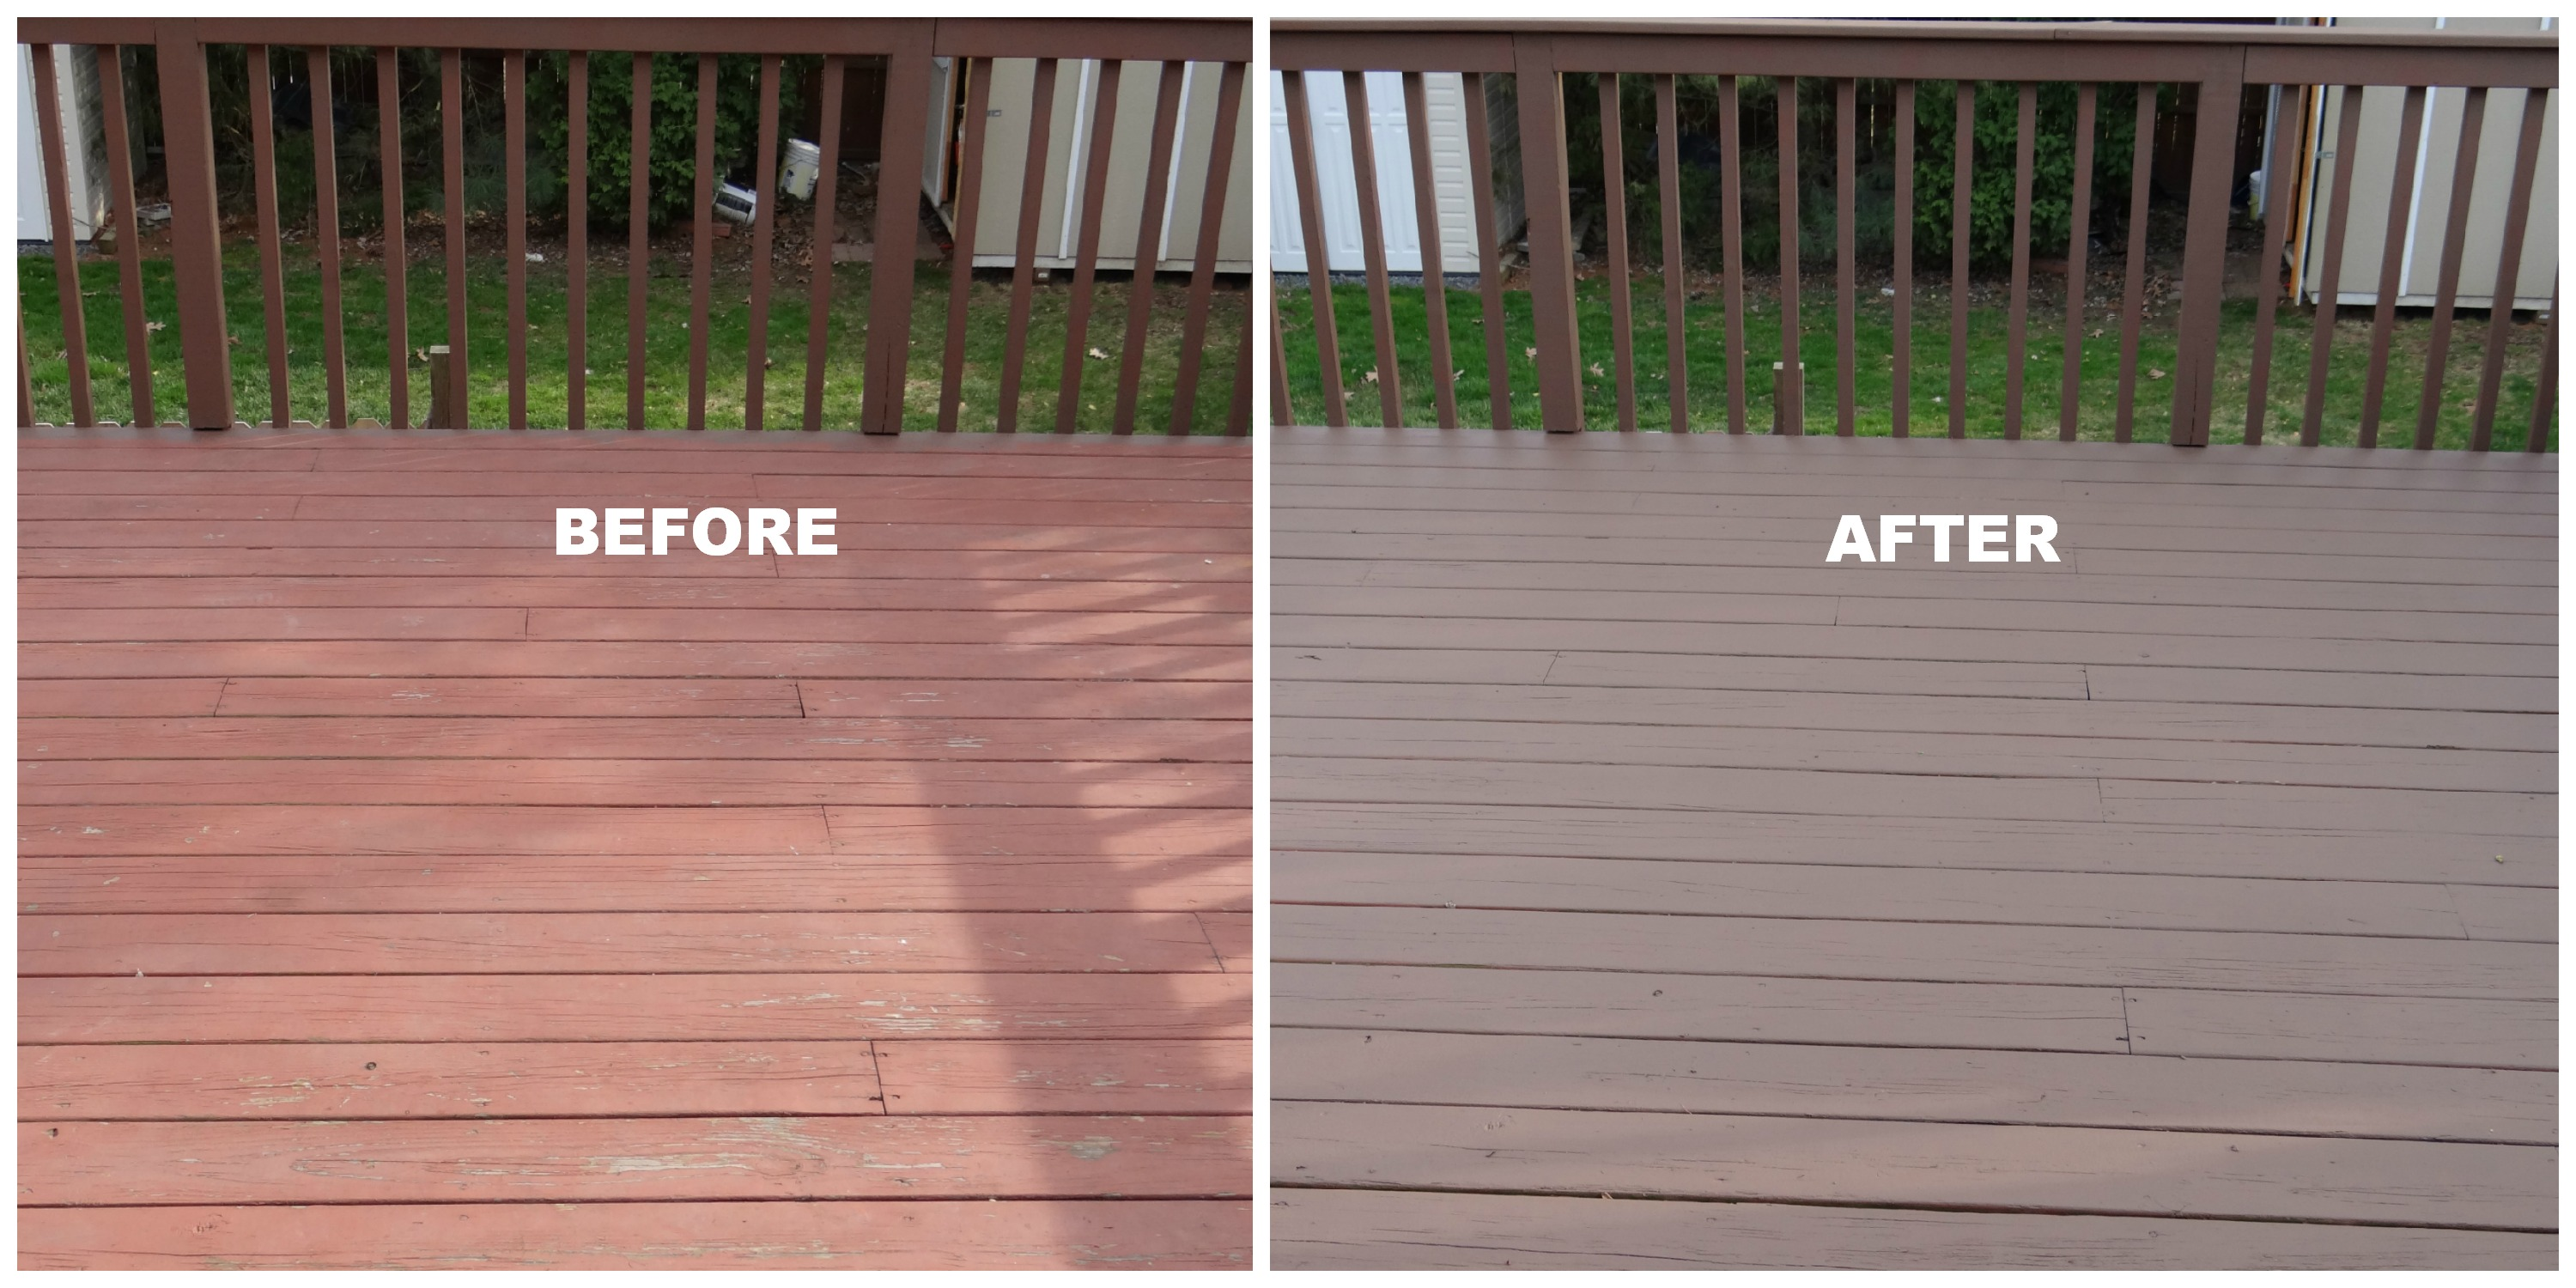 Norme Pente R e Acces Handicape in addition Bursa Injections besides Hardwood Floor Refinishing Prefinished Wood Installation Morristown Nj 07960 further 5 Things We Realize From Repainting Deck 404 further Floor Truss End Support Details. on treated stairs